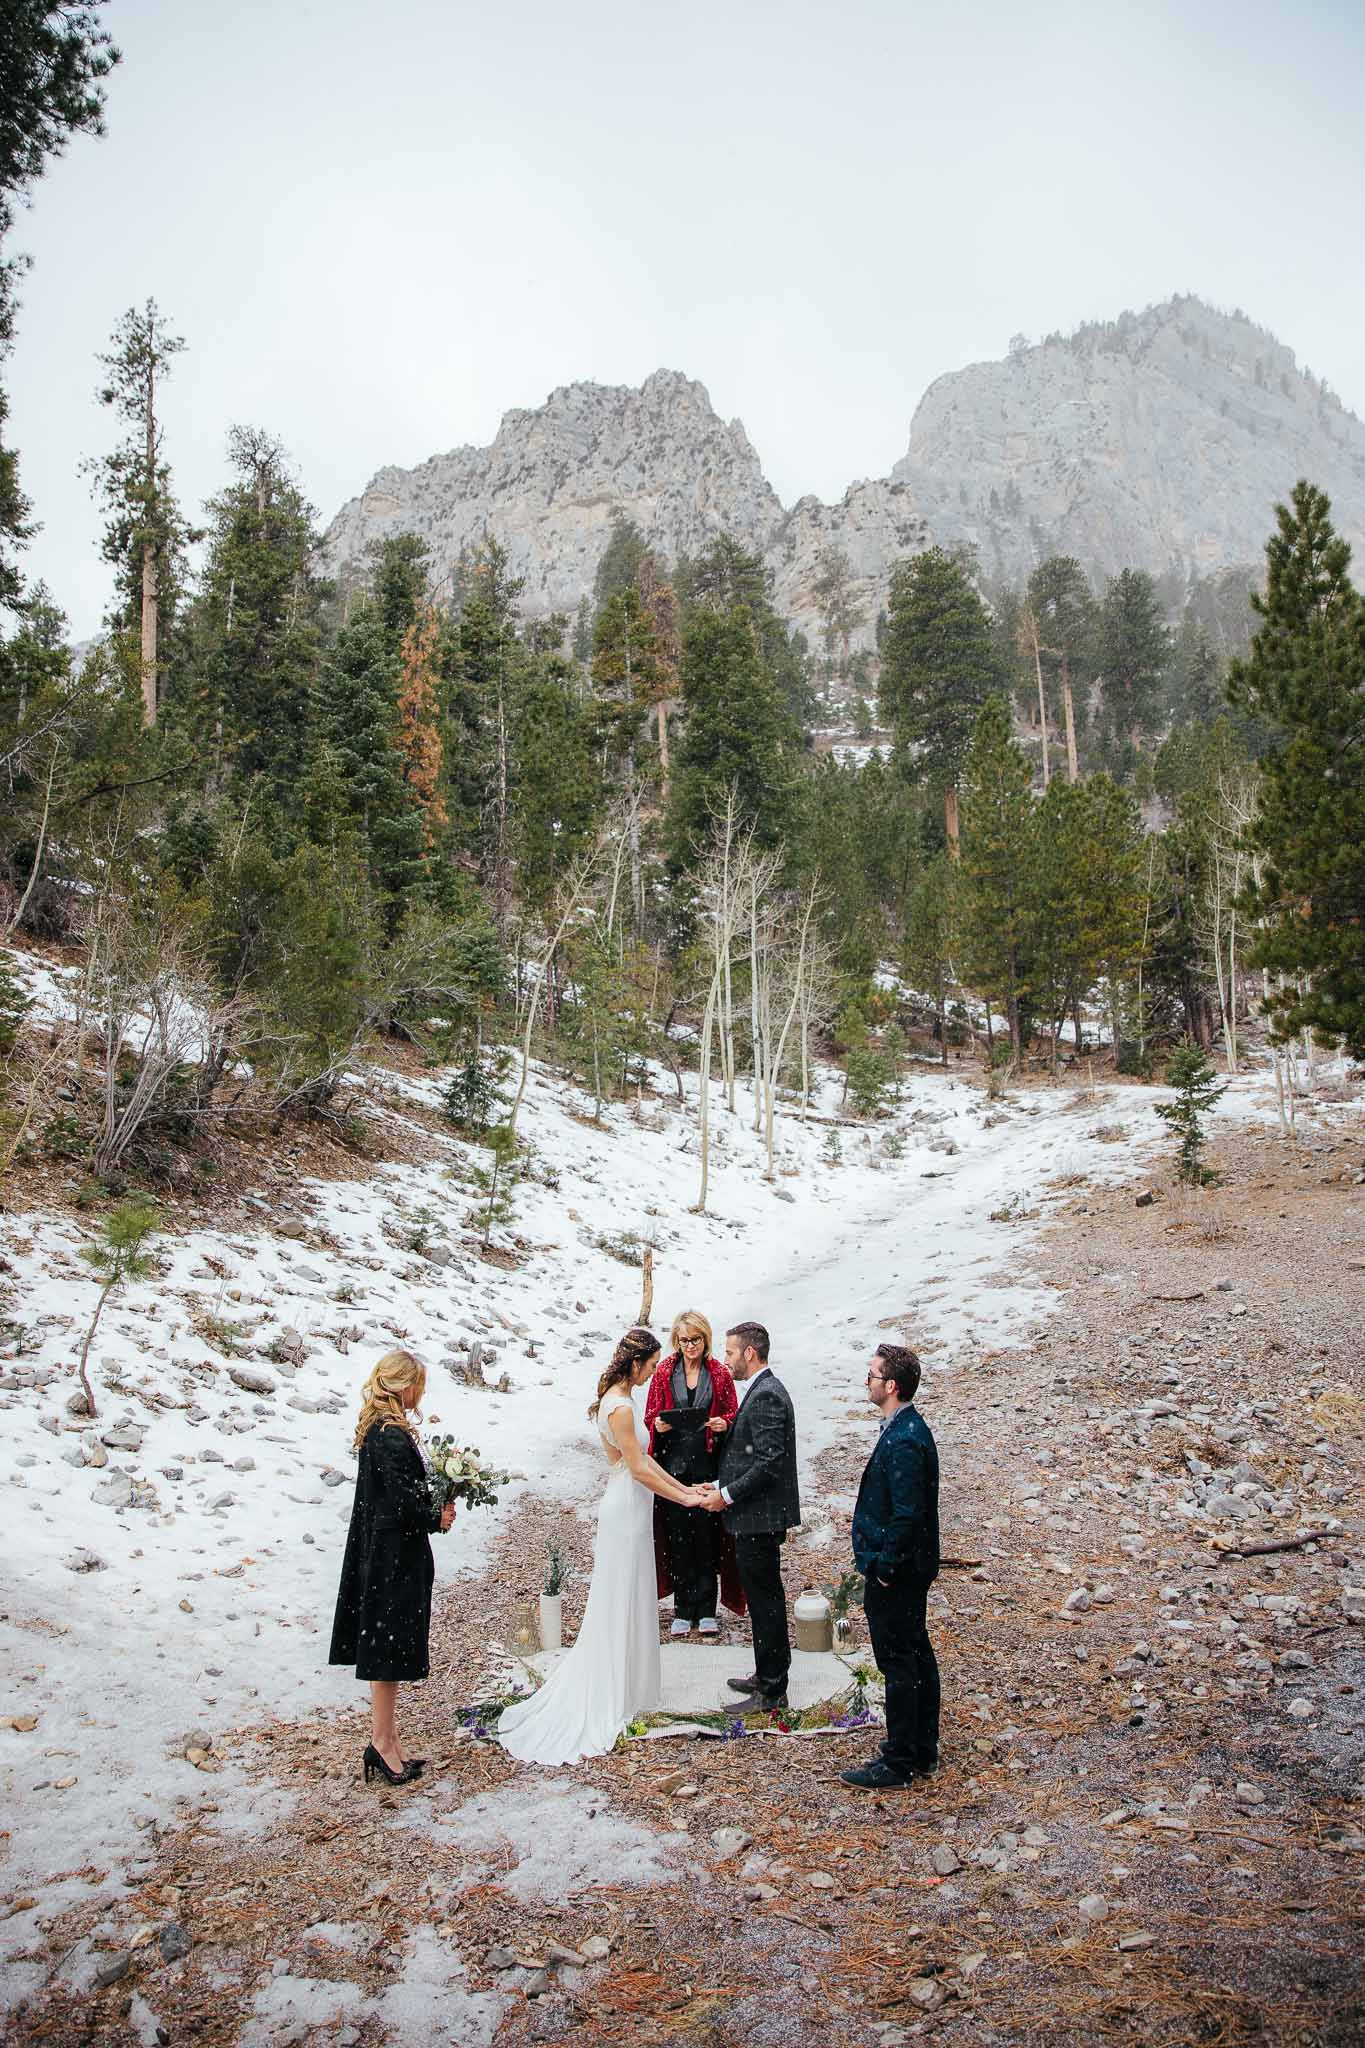 Elopement ceremony with witnesses in Mt. Charleston near Las Vegas Nevada